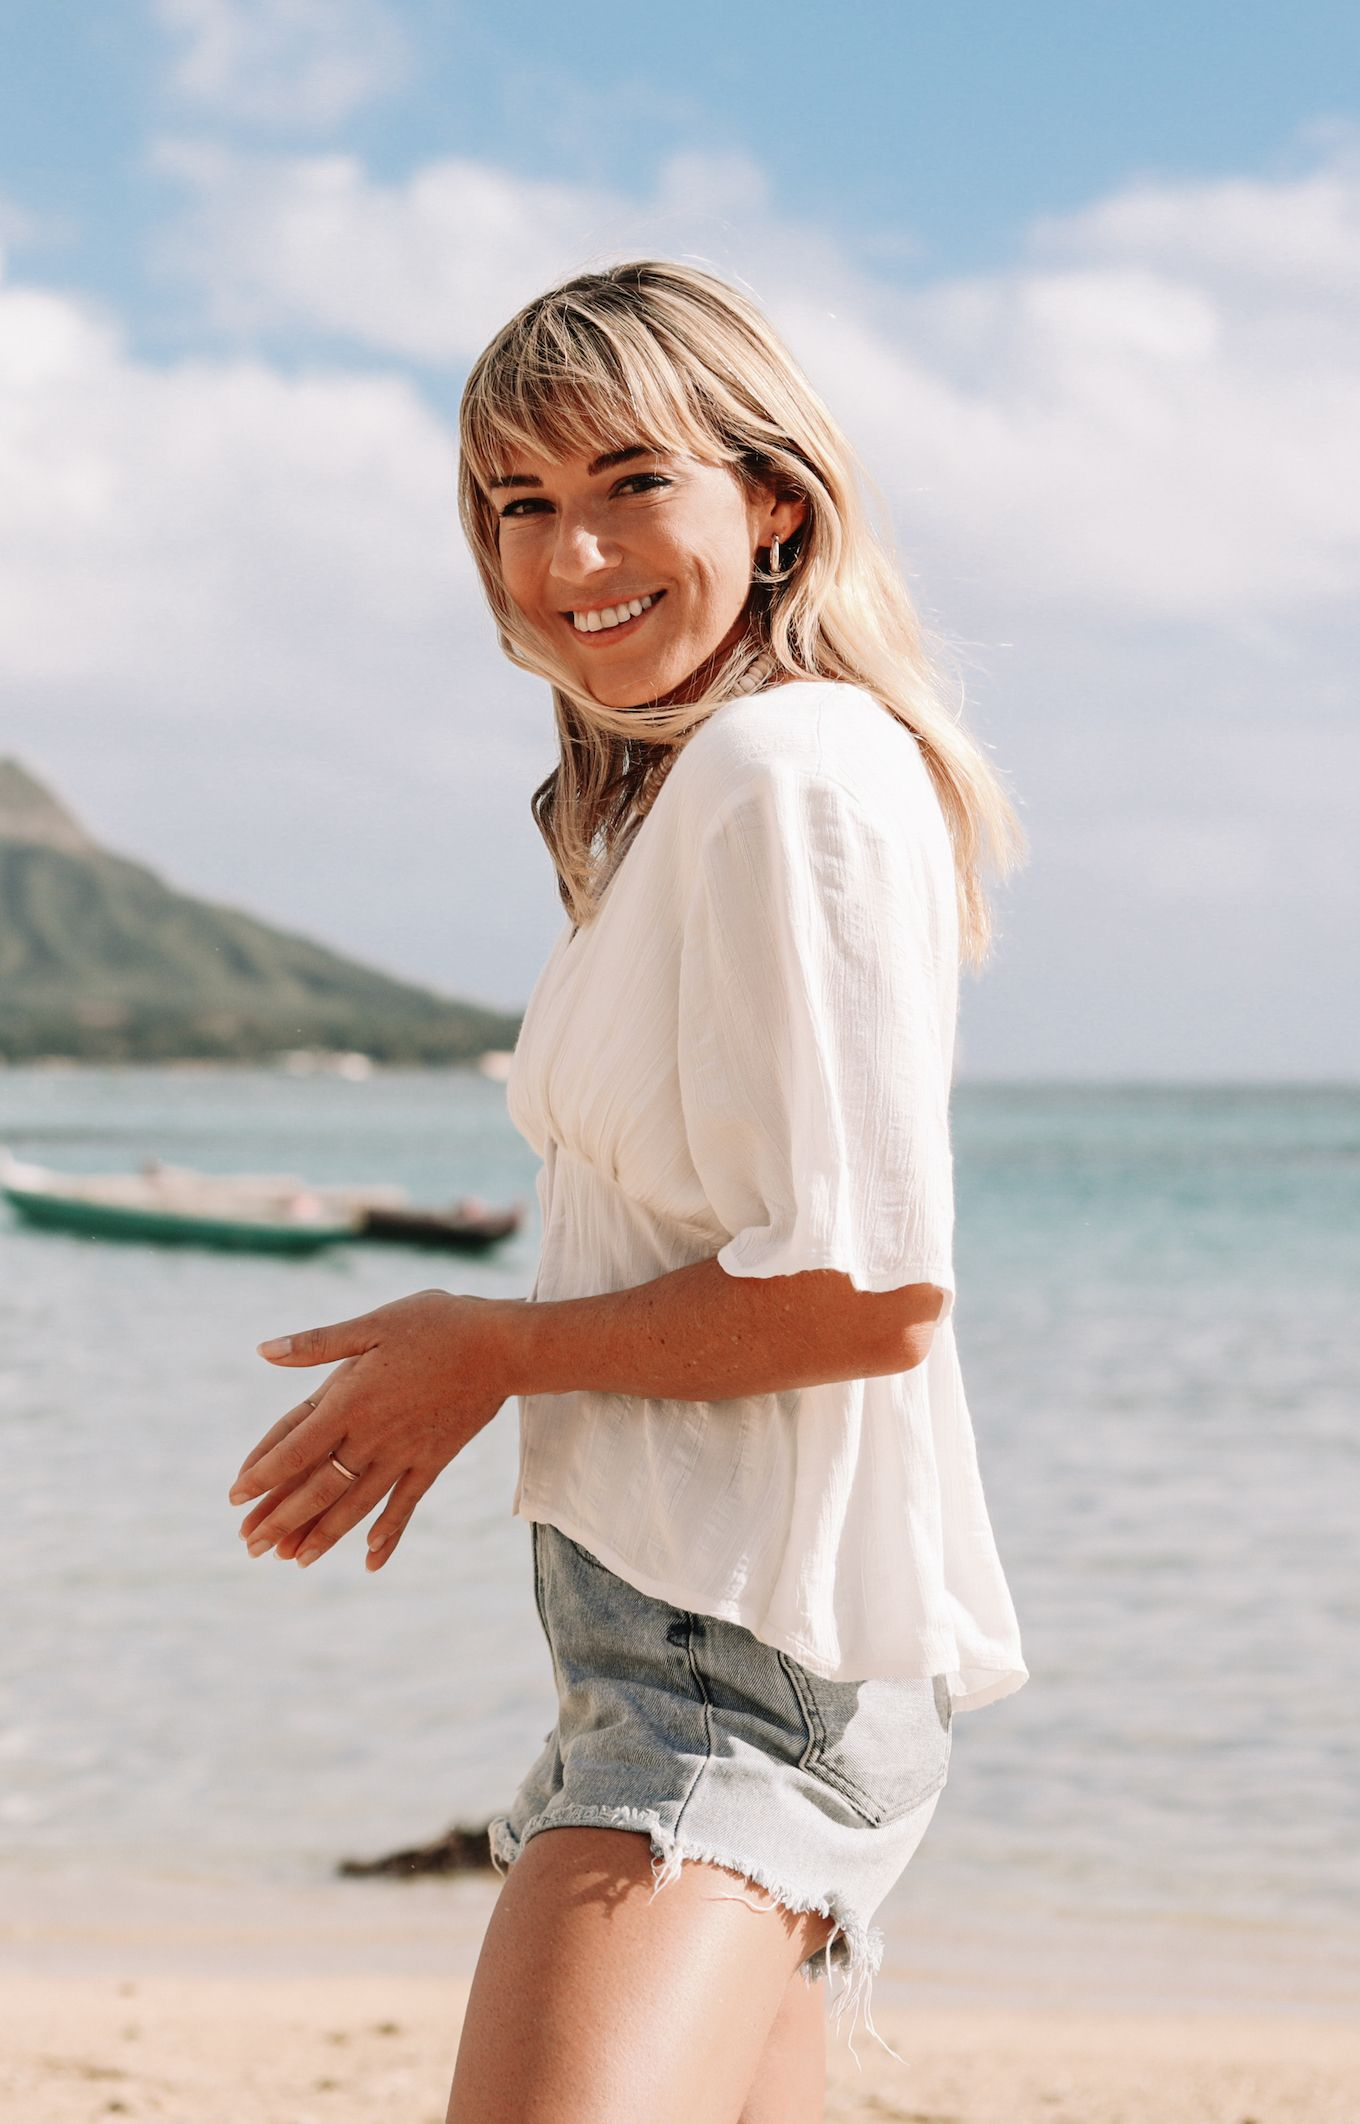 Pro surfer Coco Ho is photographed on September 16, 2014